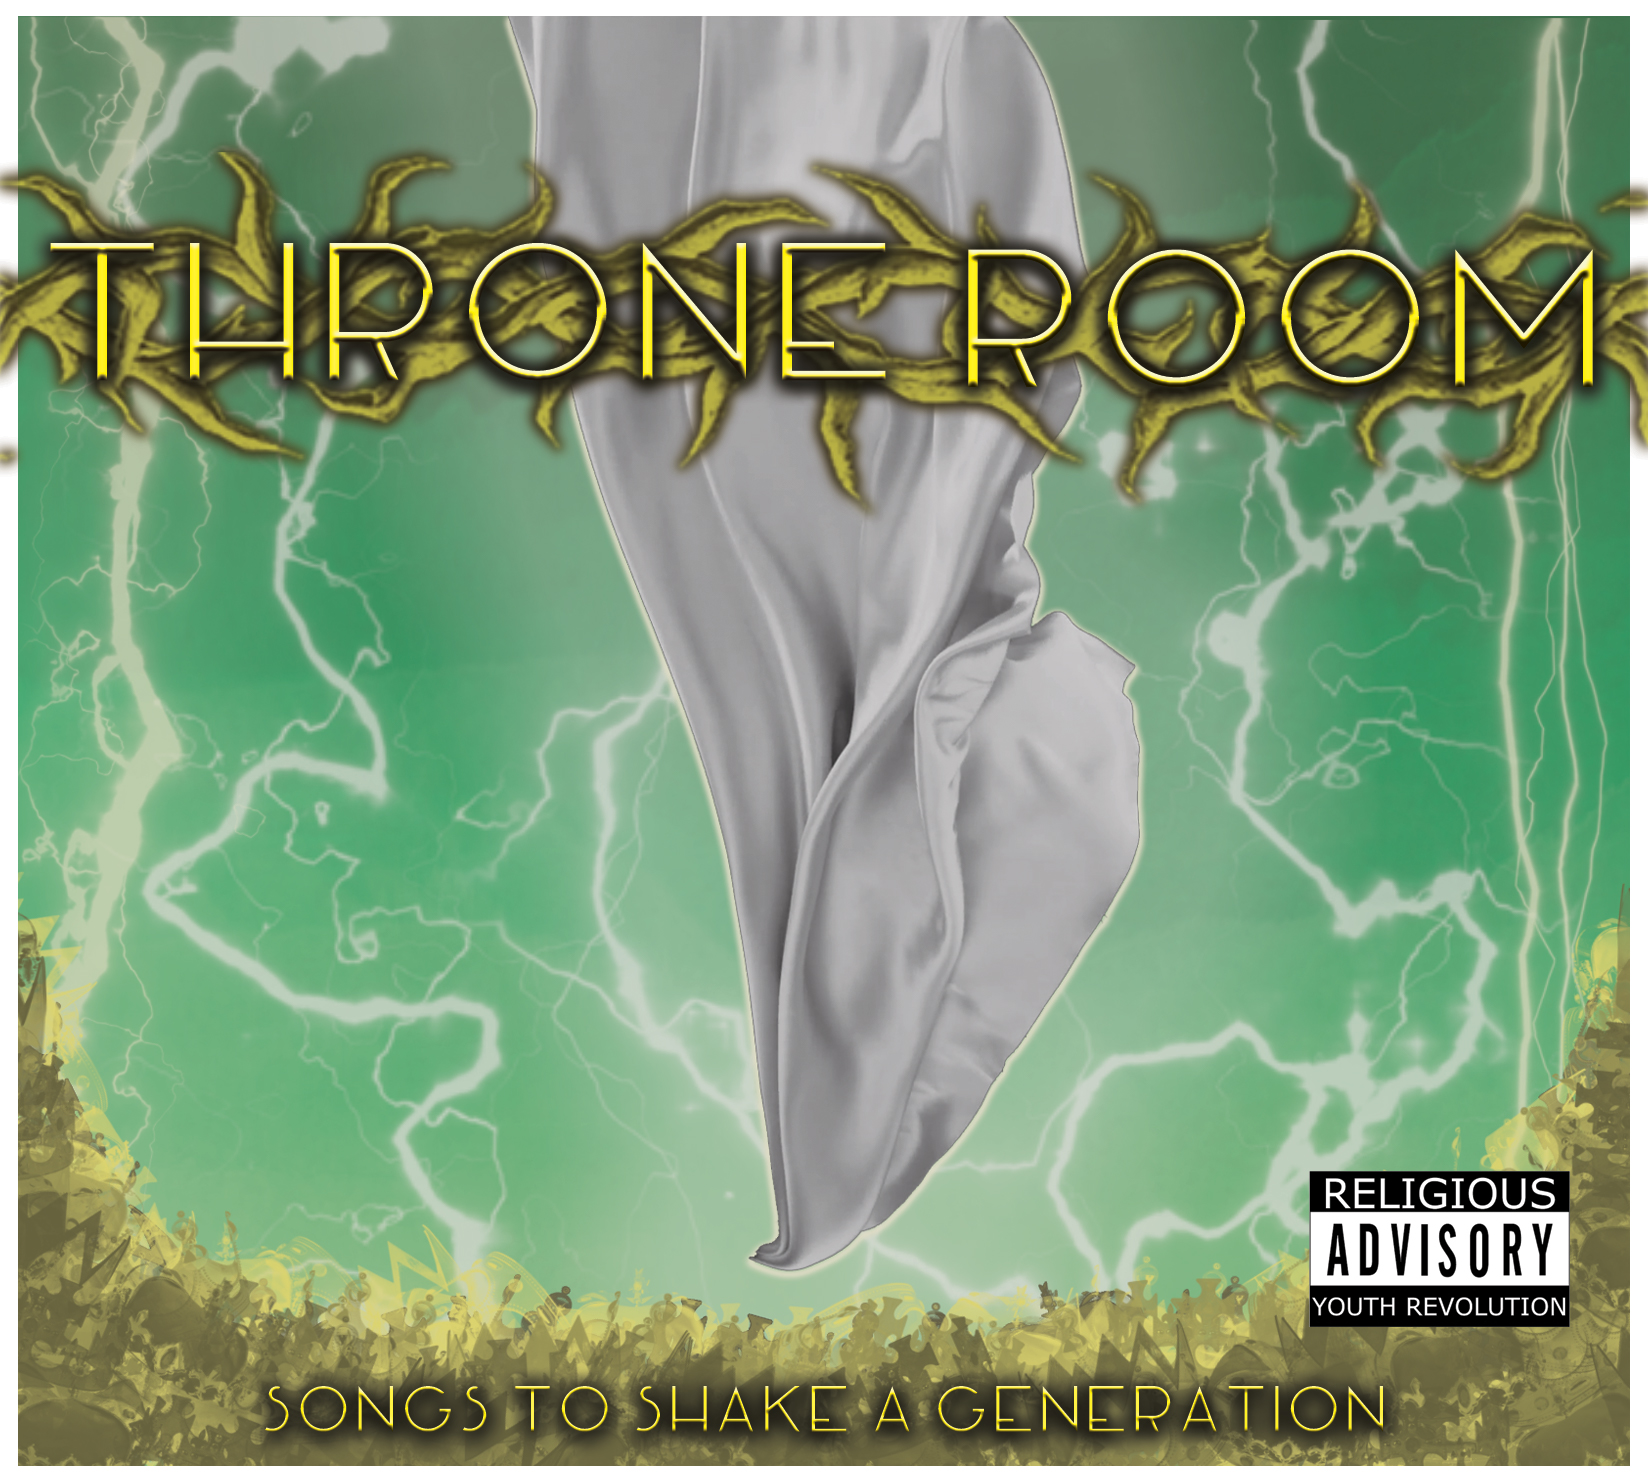 Throne Room White Border Advisory.jpg